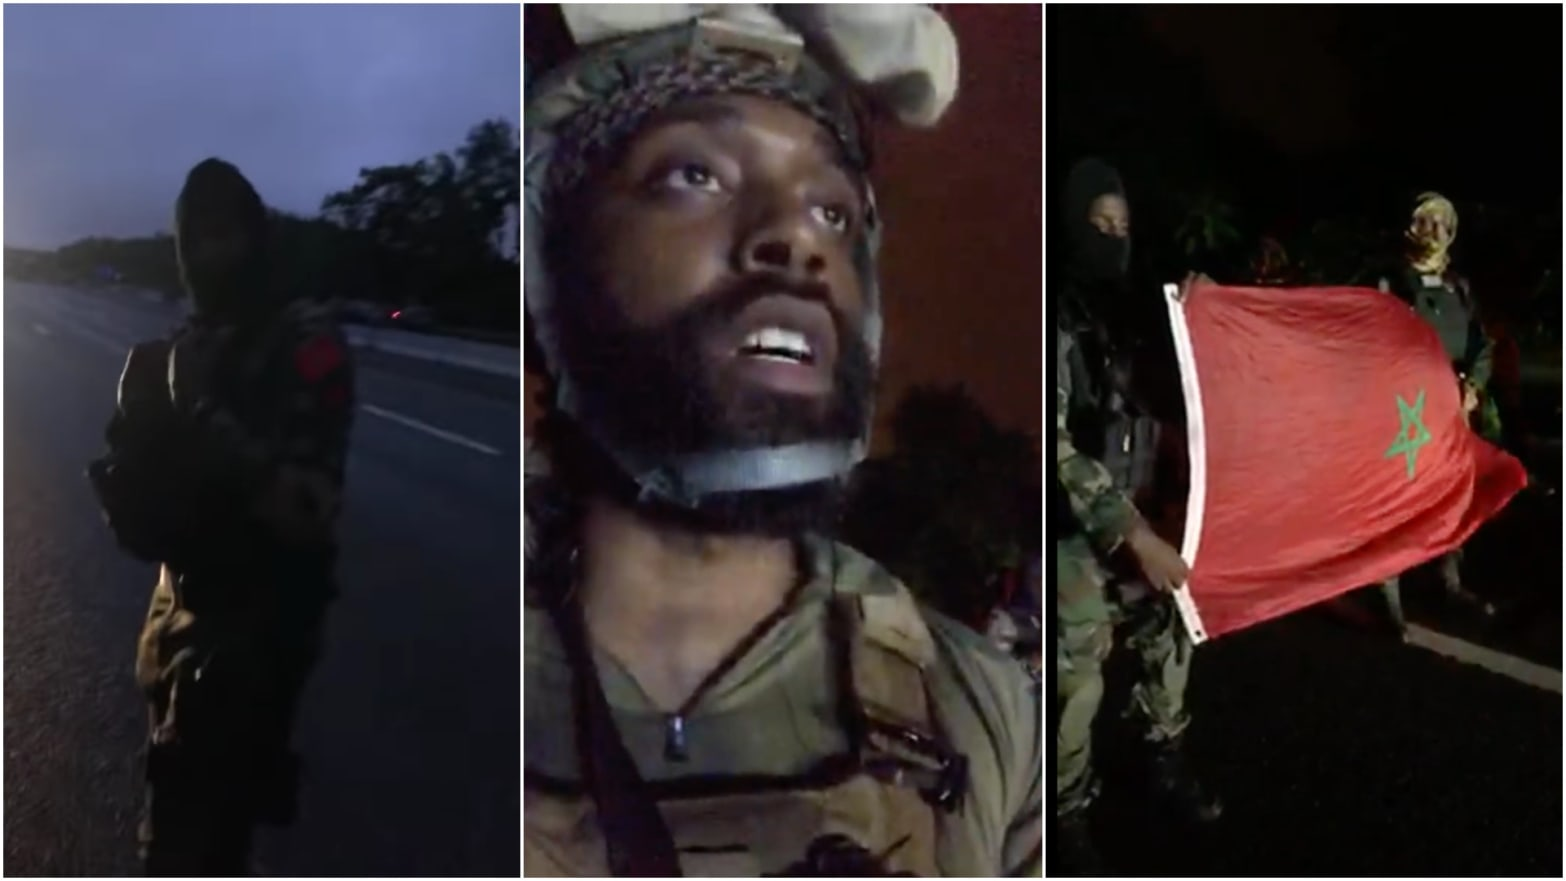 Armed Militia Group Called Rise of the Moors Shut Down Interstate 95 in  Wakefield, Massachusetts